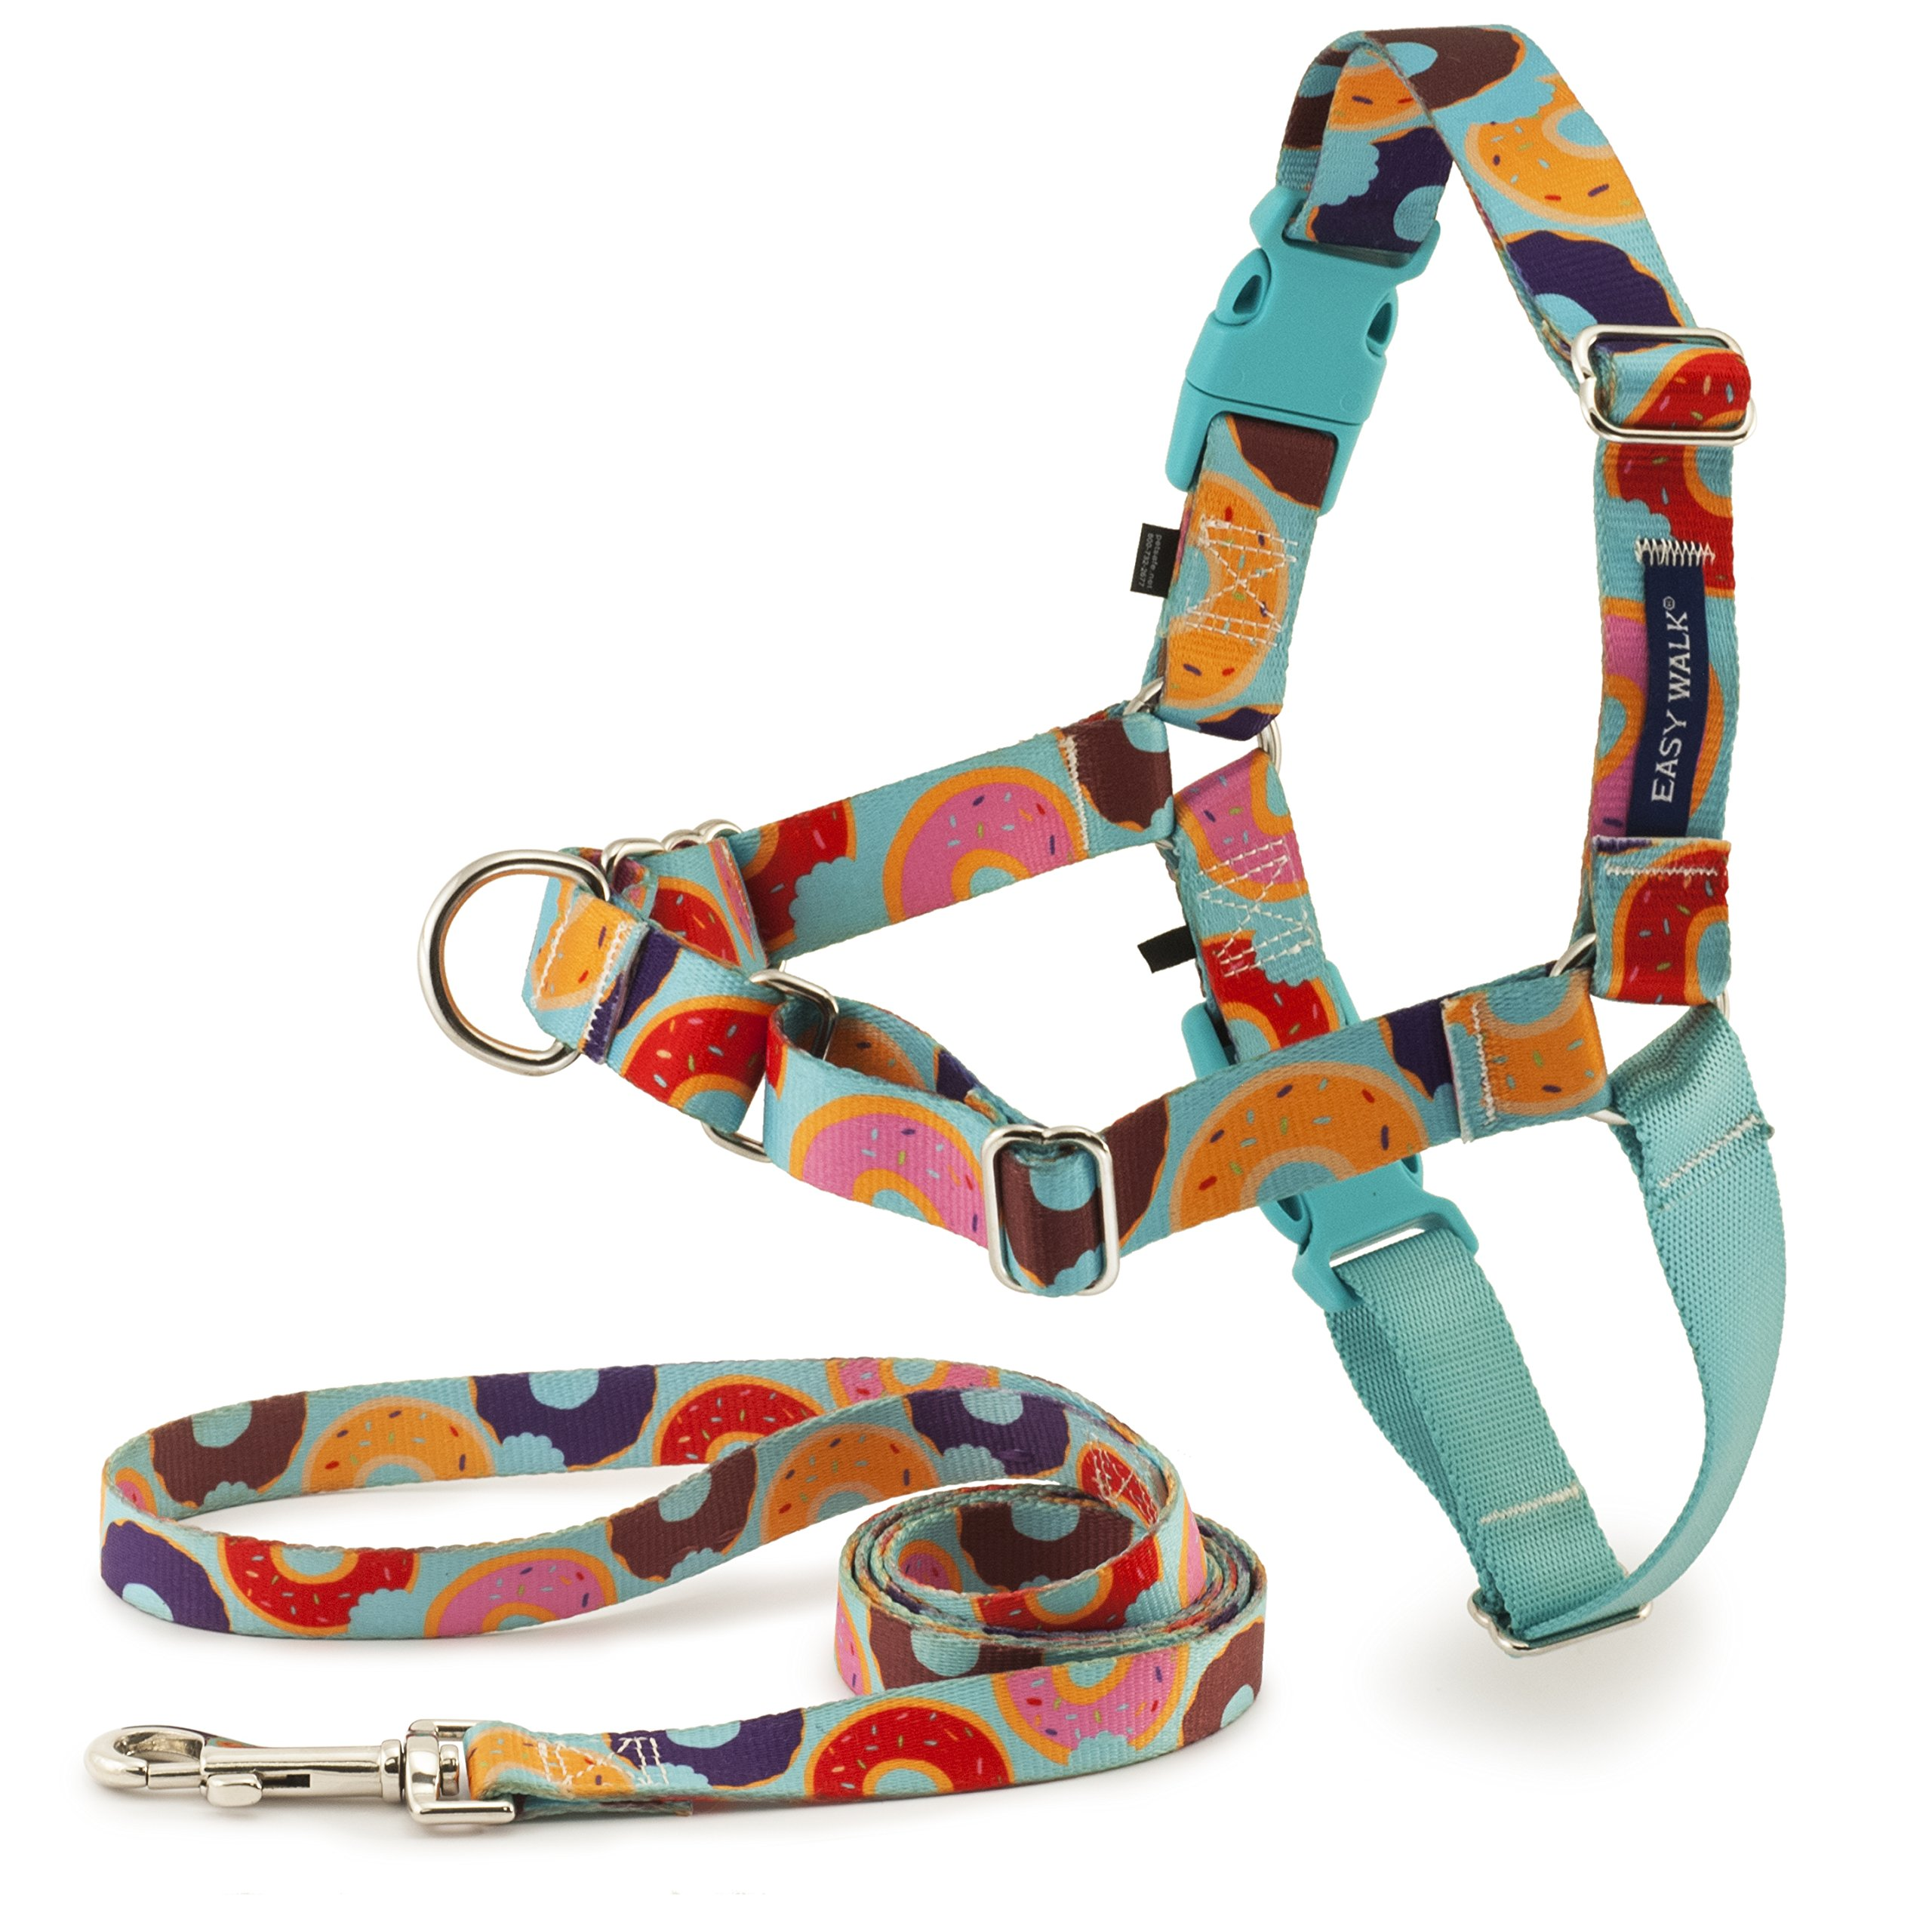 PetSafe EWH-C-HC-M-DNT Easy Walk Chic Harness, Medium, Donuts by PetSafe